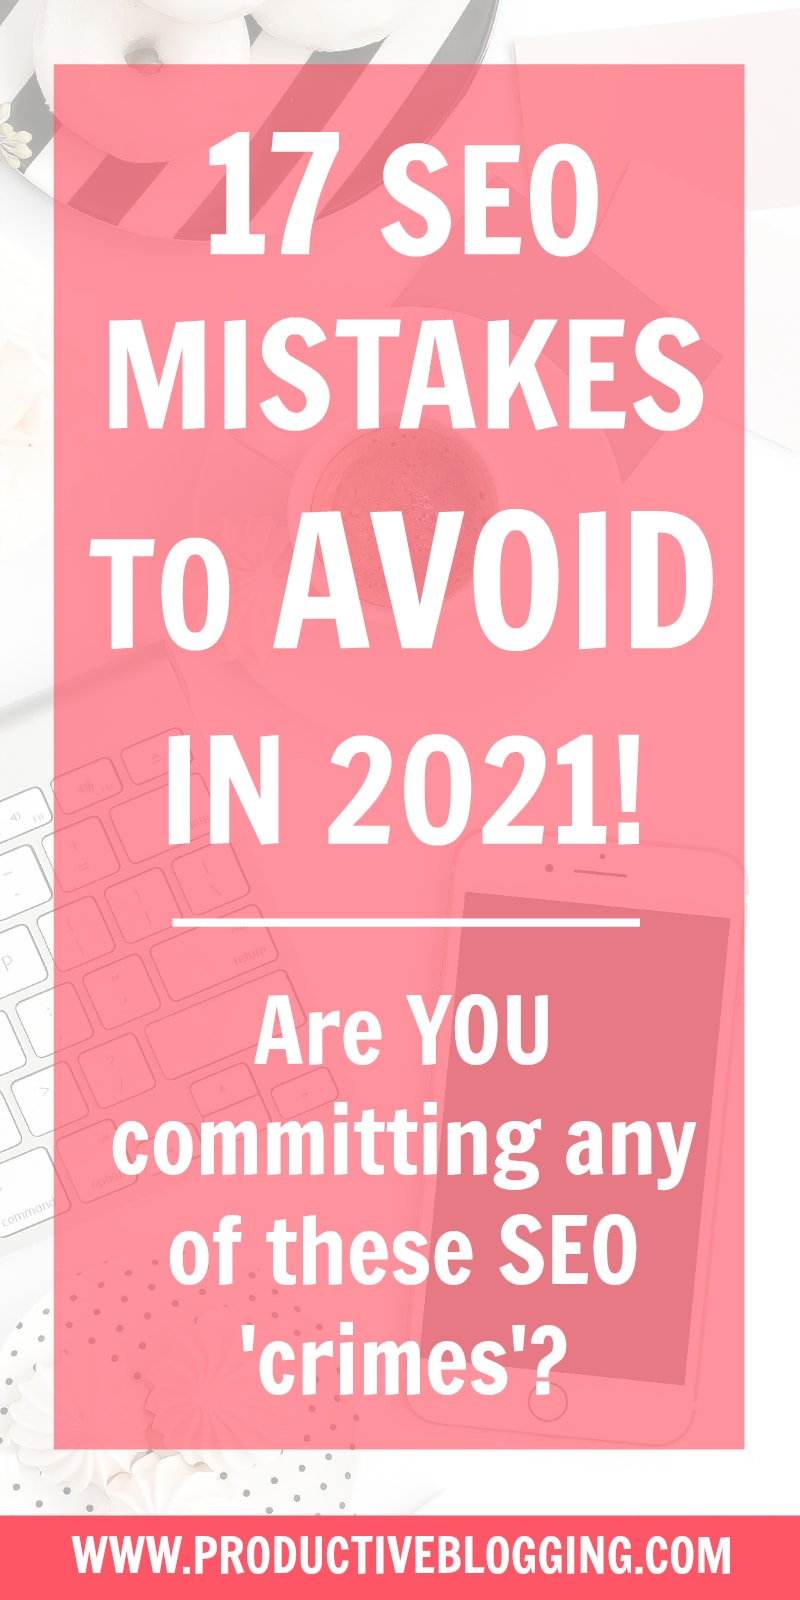 SEO is no longer optional for bloggers, it's now an essential part of blogging – but are you doing it right? Make sure you are not making any of these 17 SEO mistakes to avoid in 2021… #SEO #SEOtips #SEOmistakes #SEOhacks #bloggingtips #blogging #bloggingmistakes #bloggermistakes #blogginghacks #bloggingSEO #SEOforbloggers #productiveblogging